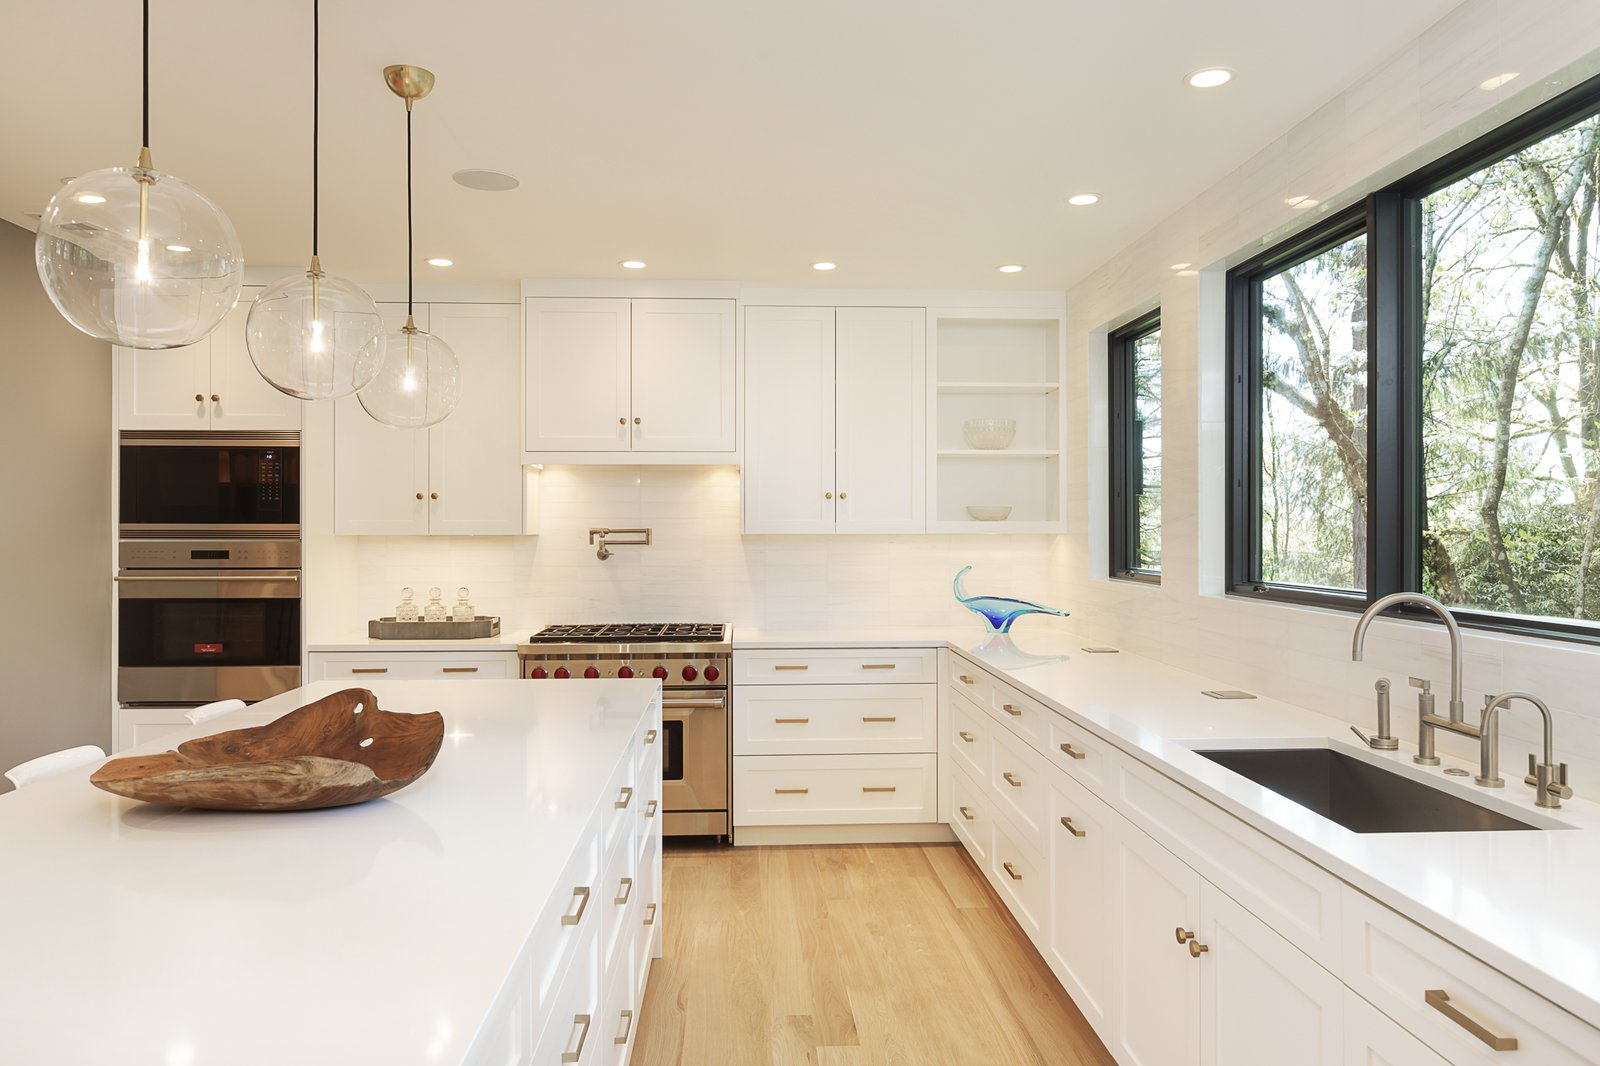 Kitchen, Quartzite, Recessed, Range, Light Hardwood, White, Marble, Pendant, Undermount, and Wall Oven The transformed kitchen shows off how bright the home is now.   Best Kitchen Wall Oven White Marble Photos from An Iconic Portland Midcentury Is Seeking a New Owner For $1.6M